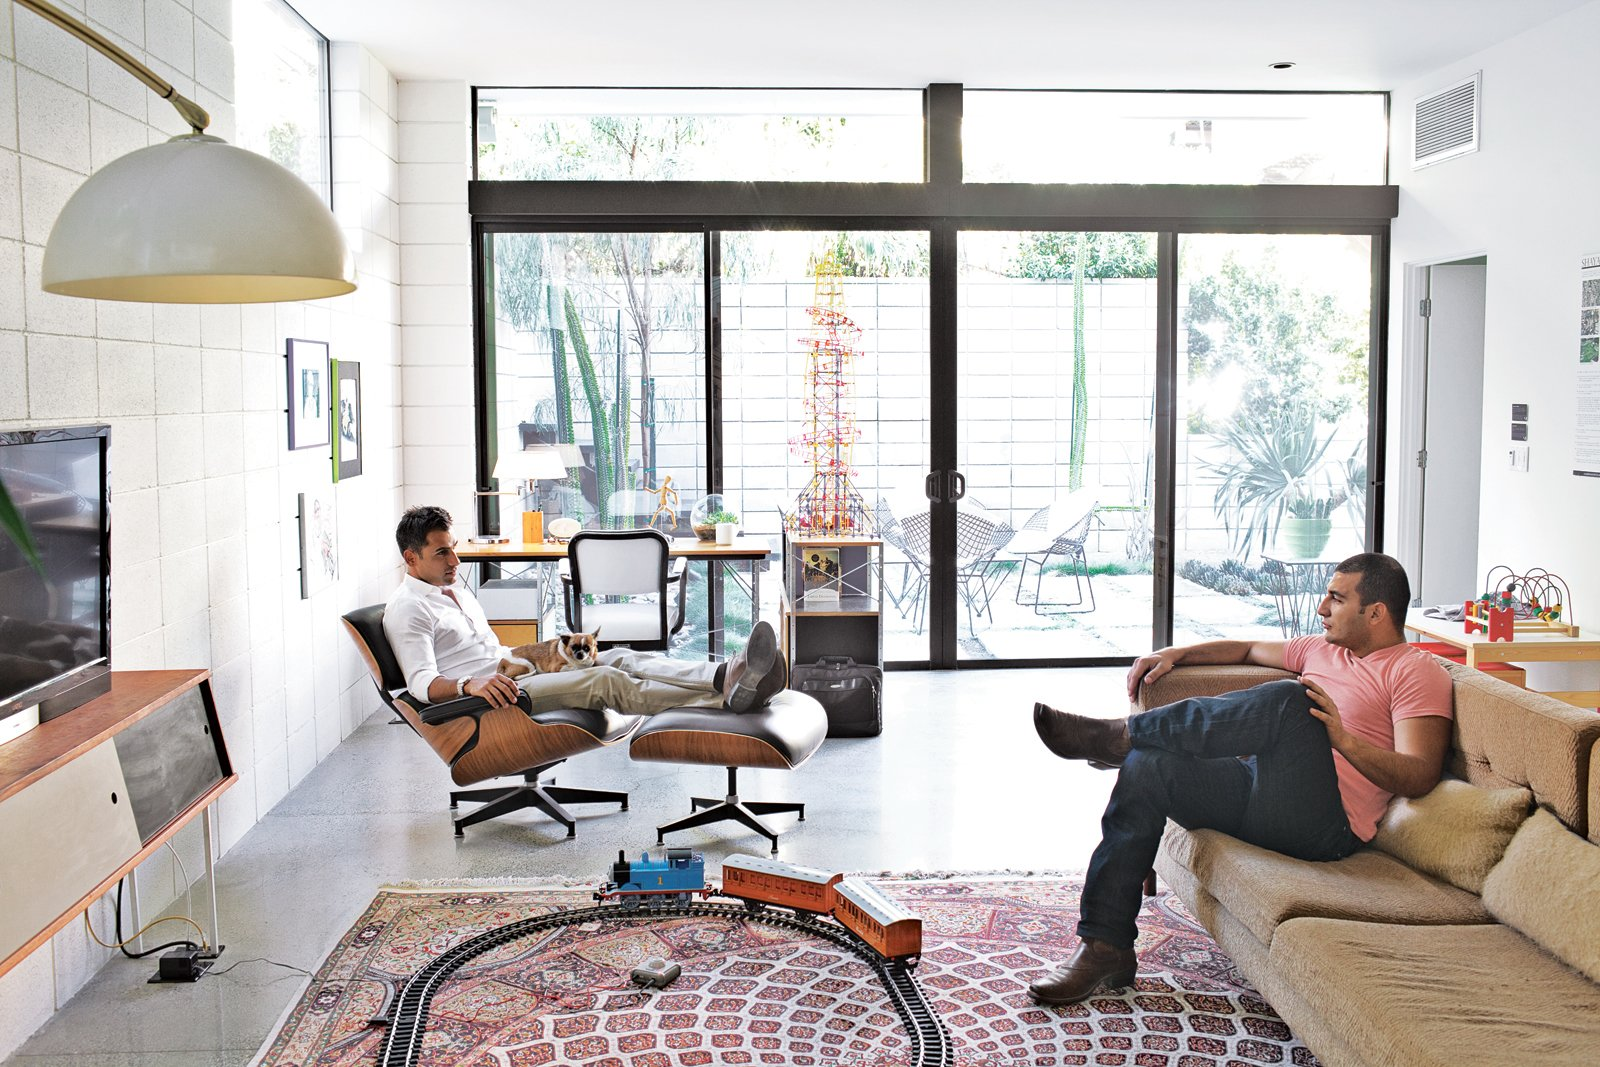 """Brothers Nima and Soheil relax in the family room on an Eames lounge chair and a custom sofa they designed. """"Mid-century architecture draws the outdoor environment indoors,"""" says Soheil. """"There's a lot of natural light, a lot of ventilation."""" Tagged: Living Room, Recliner, Sofa, Floor Lighting, Concrete Floor, Console Tables, Ottomans, Rug Floor, Chair, and Desk.  Midcentury Homes by Dwell from The First LEED Gold-Certified Family Home in San Diego"""